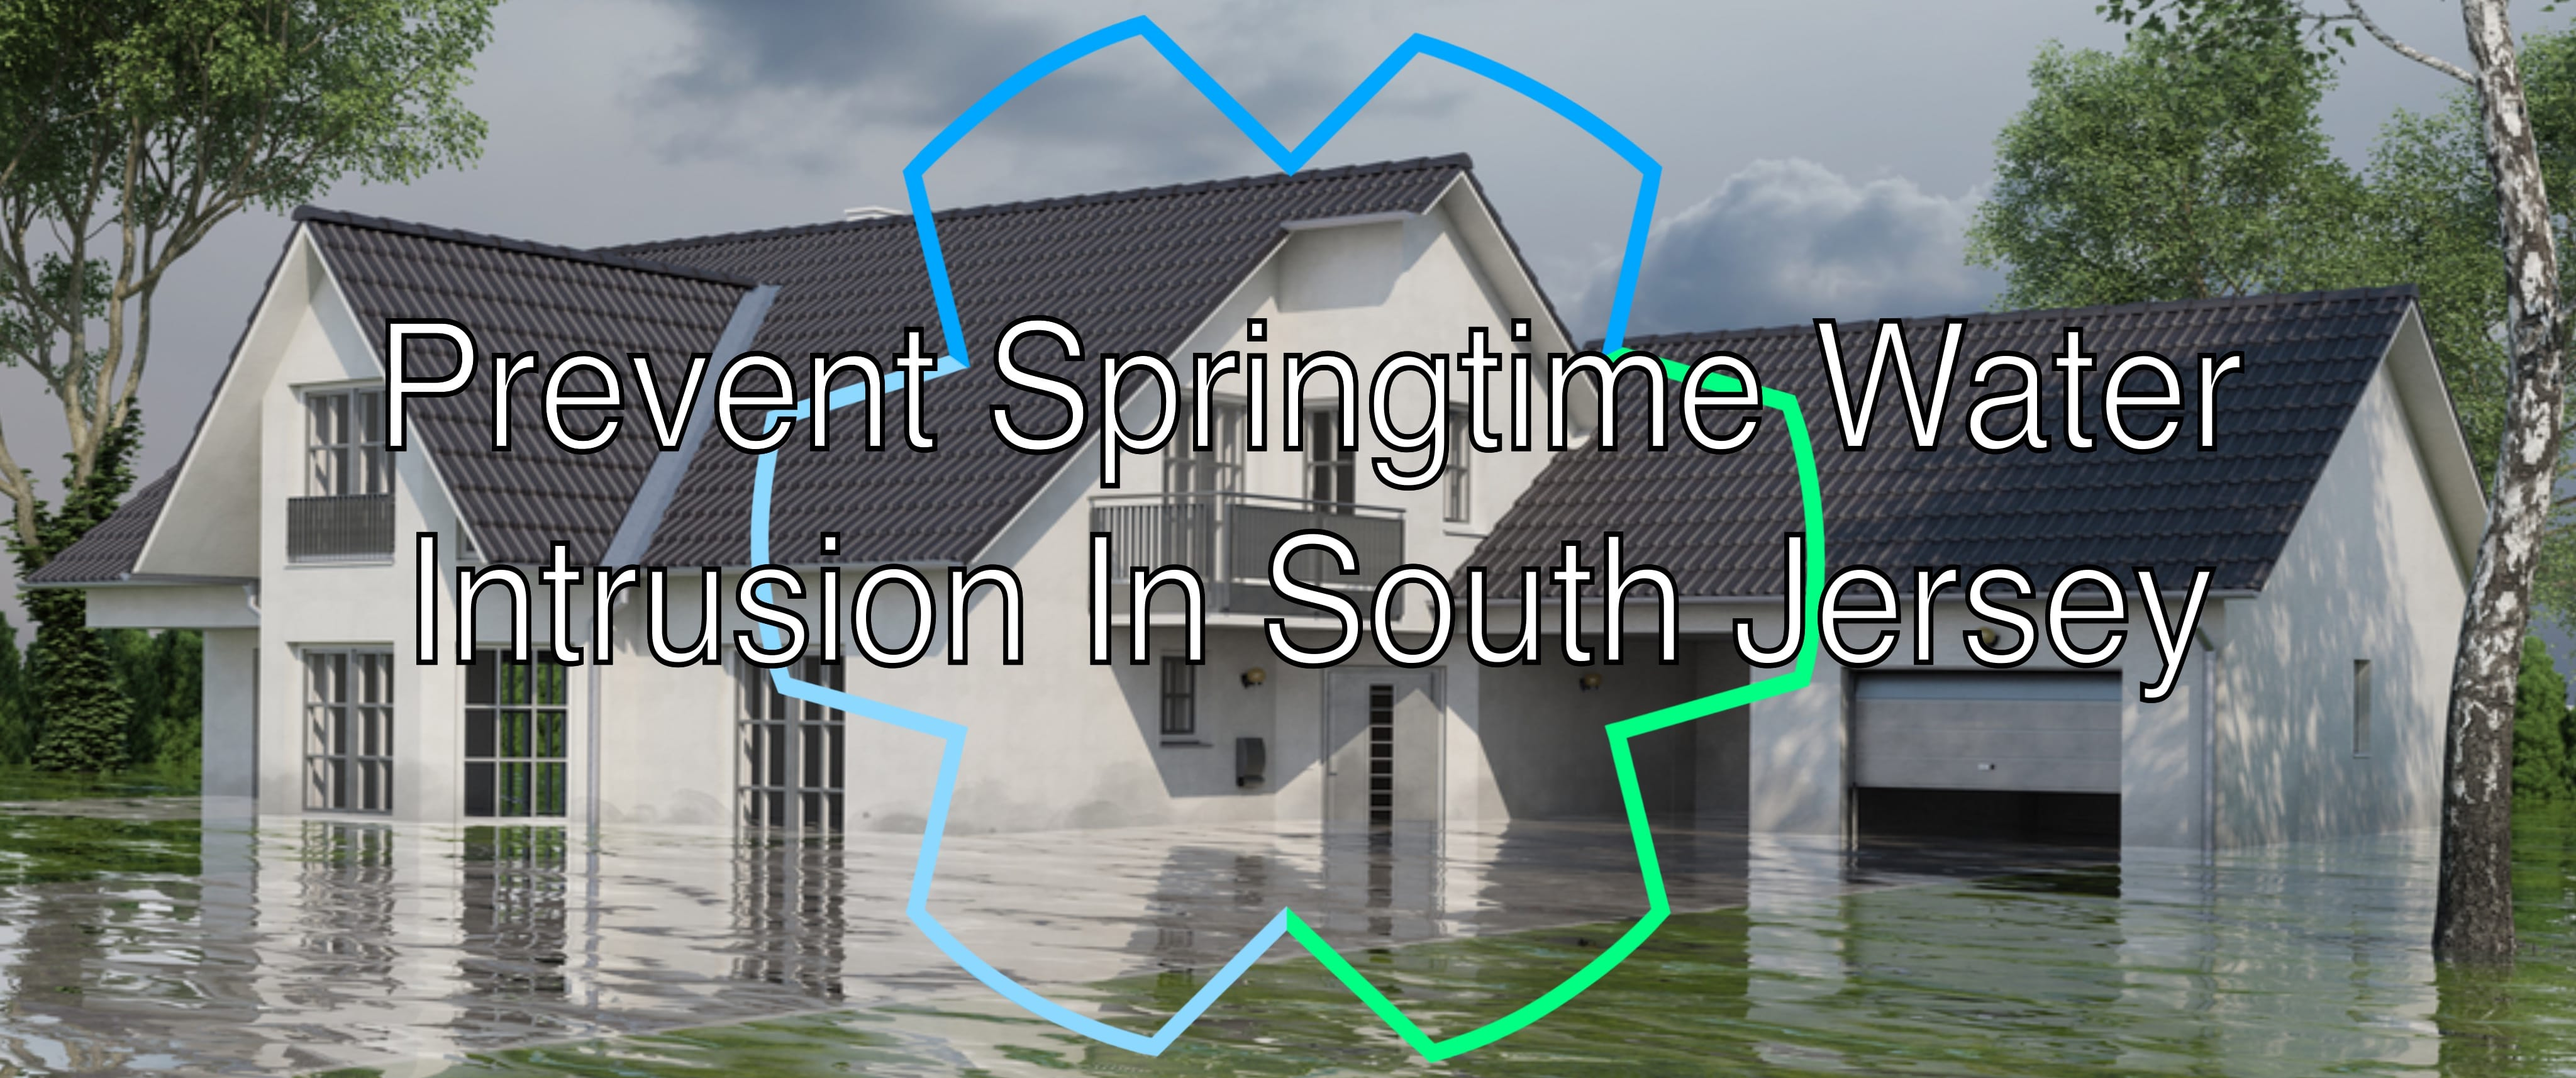 prevent springtime water intrusion in south jersey